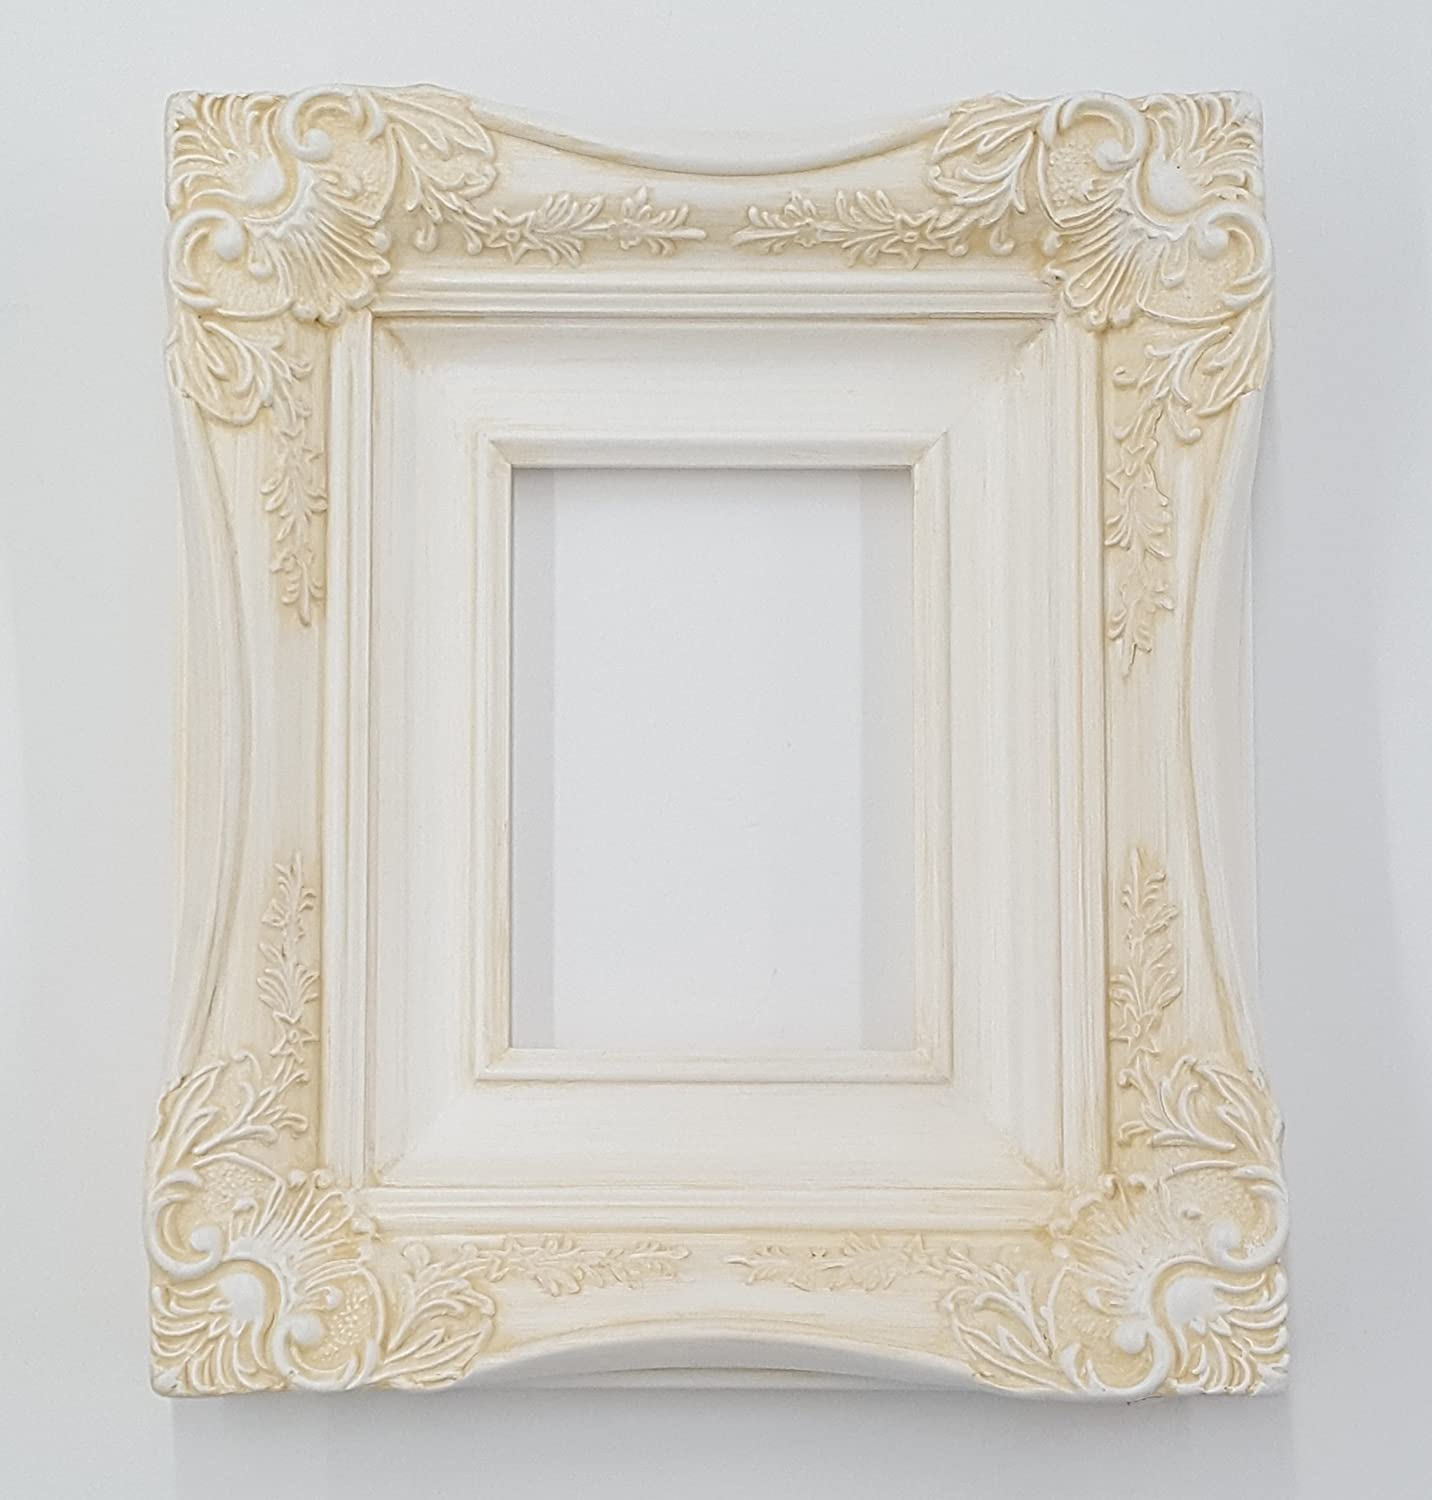 Ornate Chic Picture Frame Photo Frames 7//8  inch Table Stand Black White